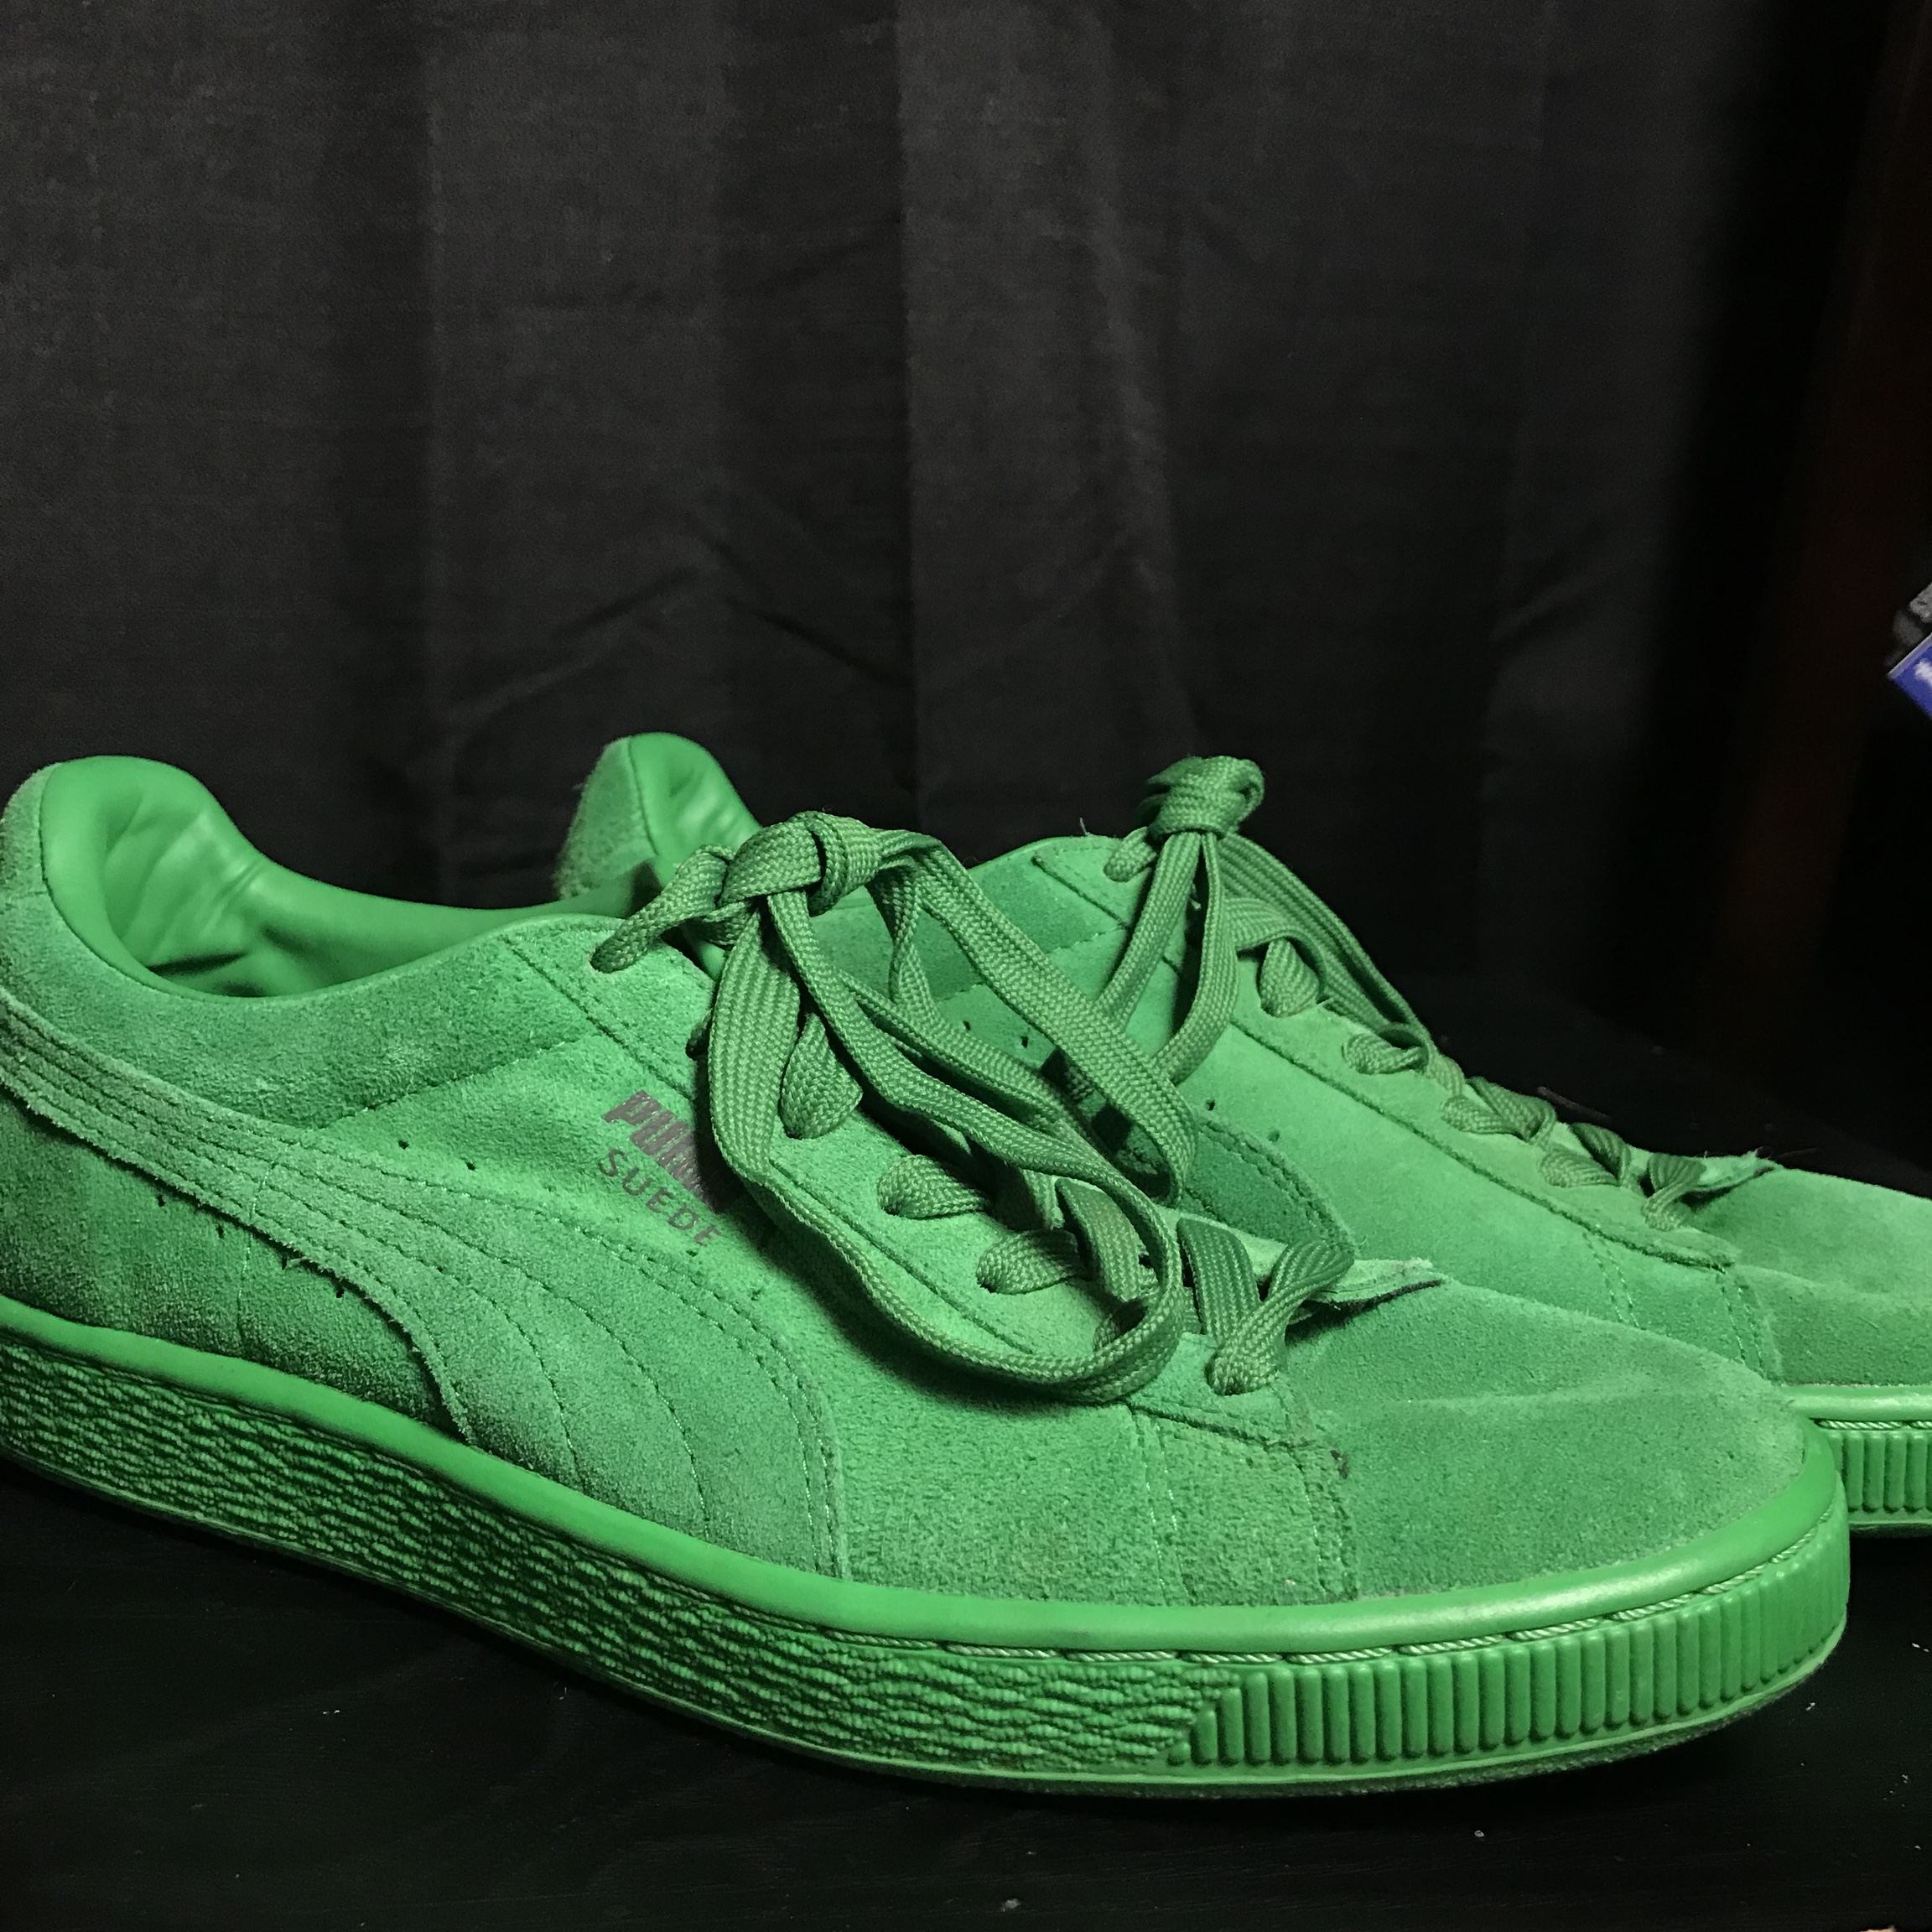 sports shoes 475ed 56240 PUMA Green Suede Shoes. Feel free to contact me with ...